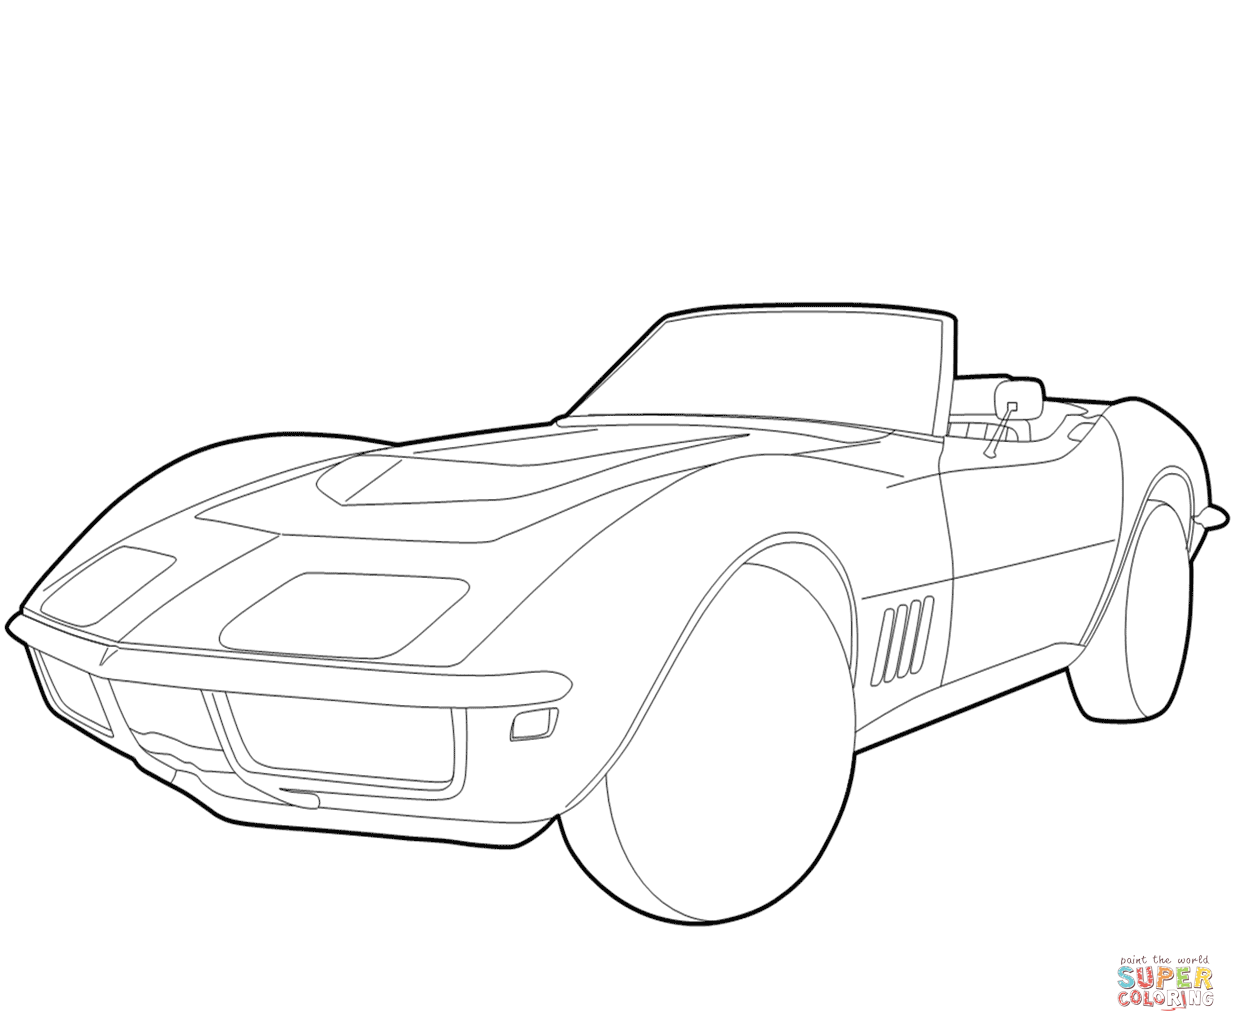 hight resolution of 1236x1032 chevrolet corvette coloring page free printable coloring pages